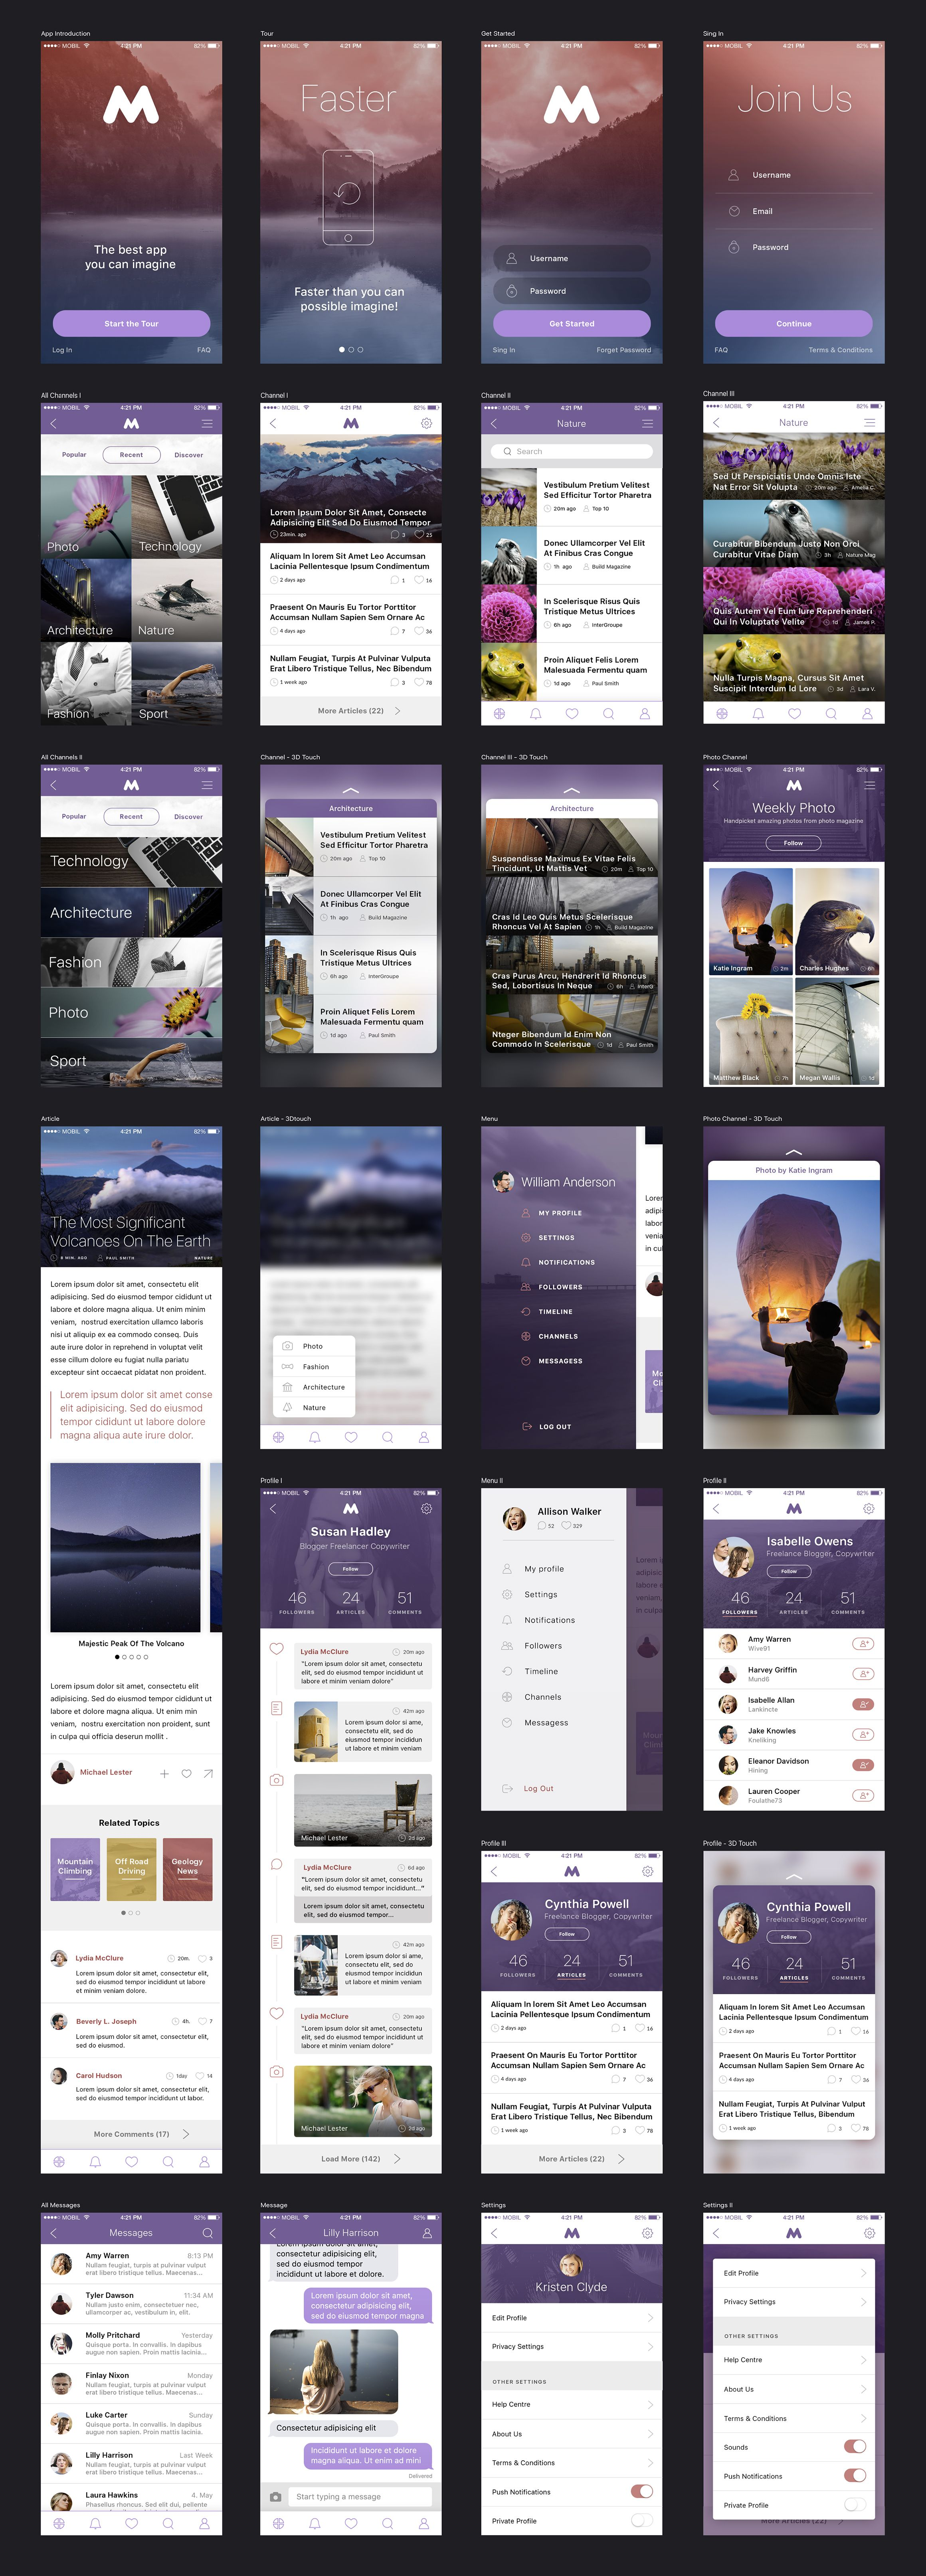 Megap is advanced PSD app template and UI kit made especially for new IOS 9 with cutting edge integrations such as 3D Touch. Megap will boost your design process and works perfectly for